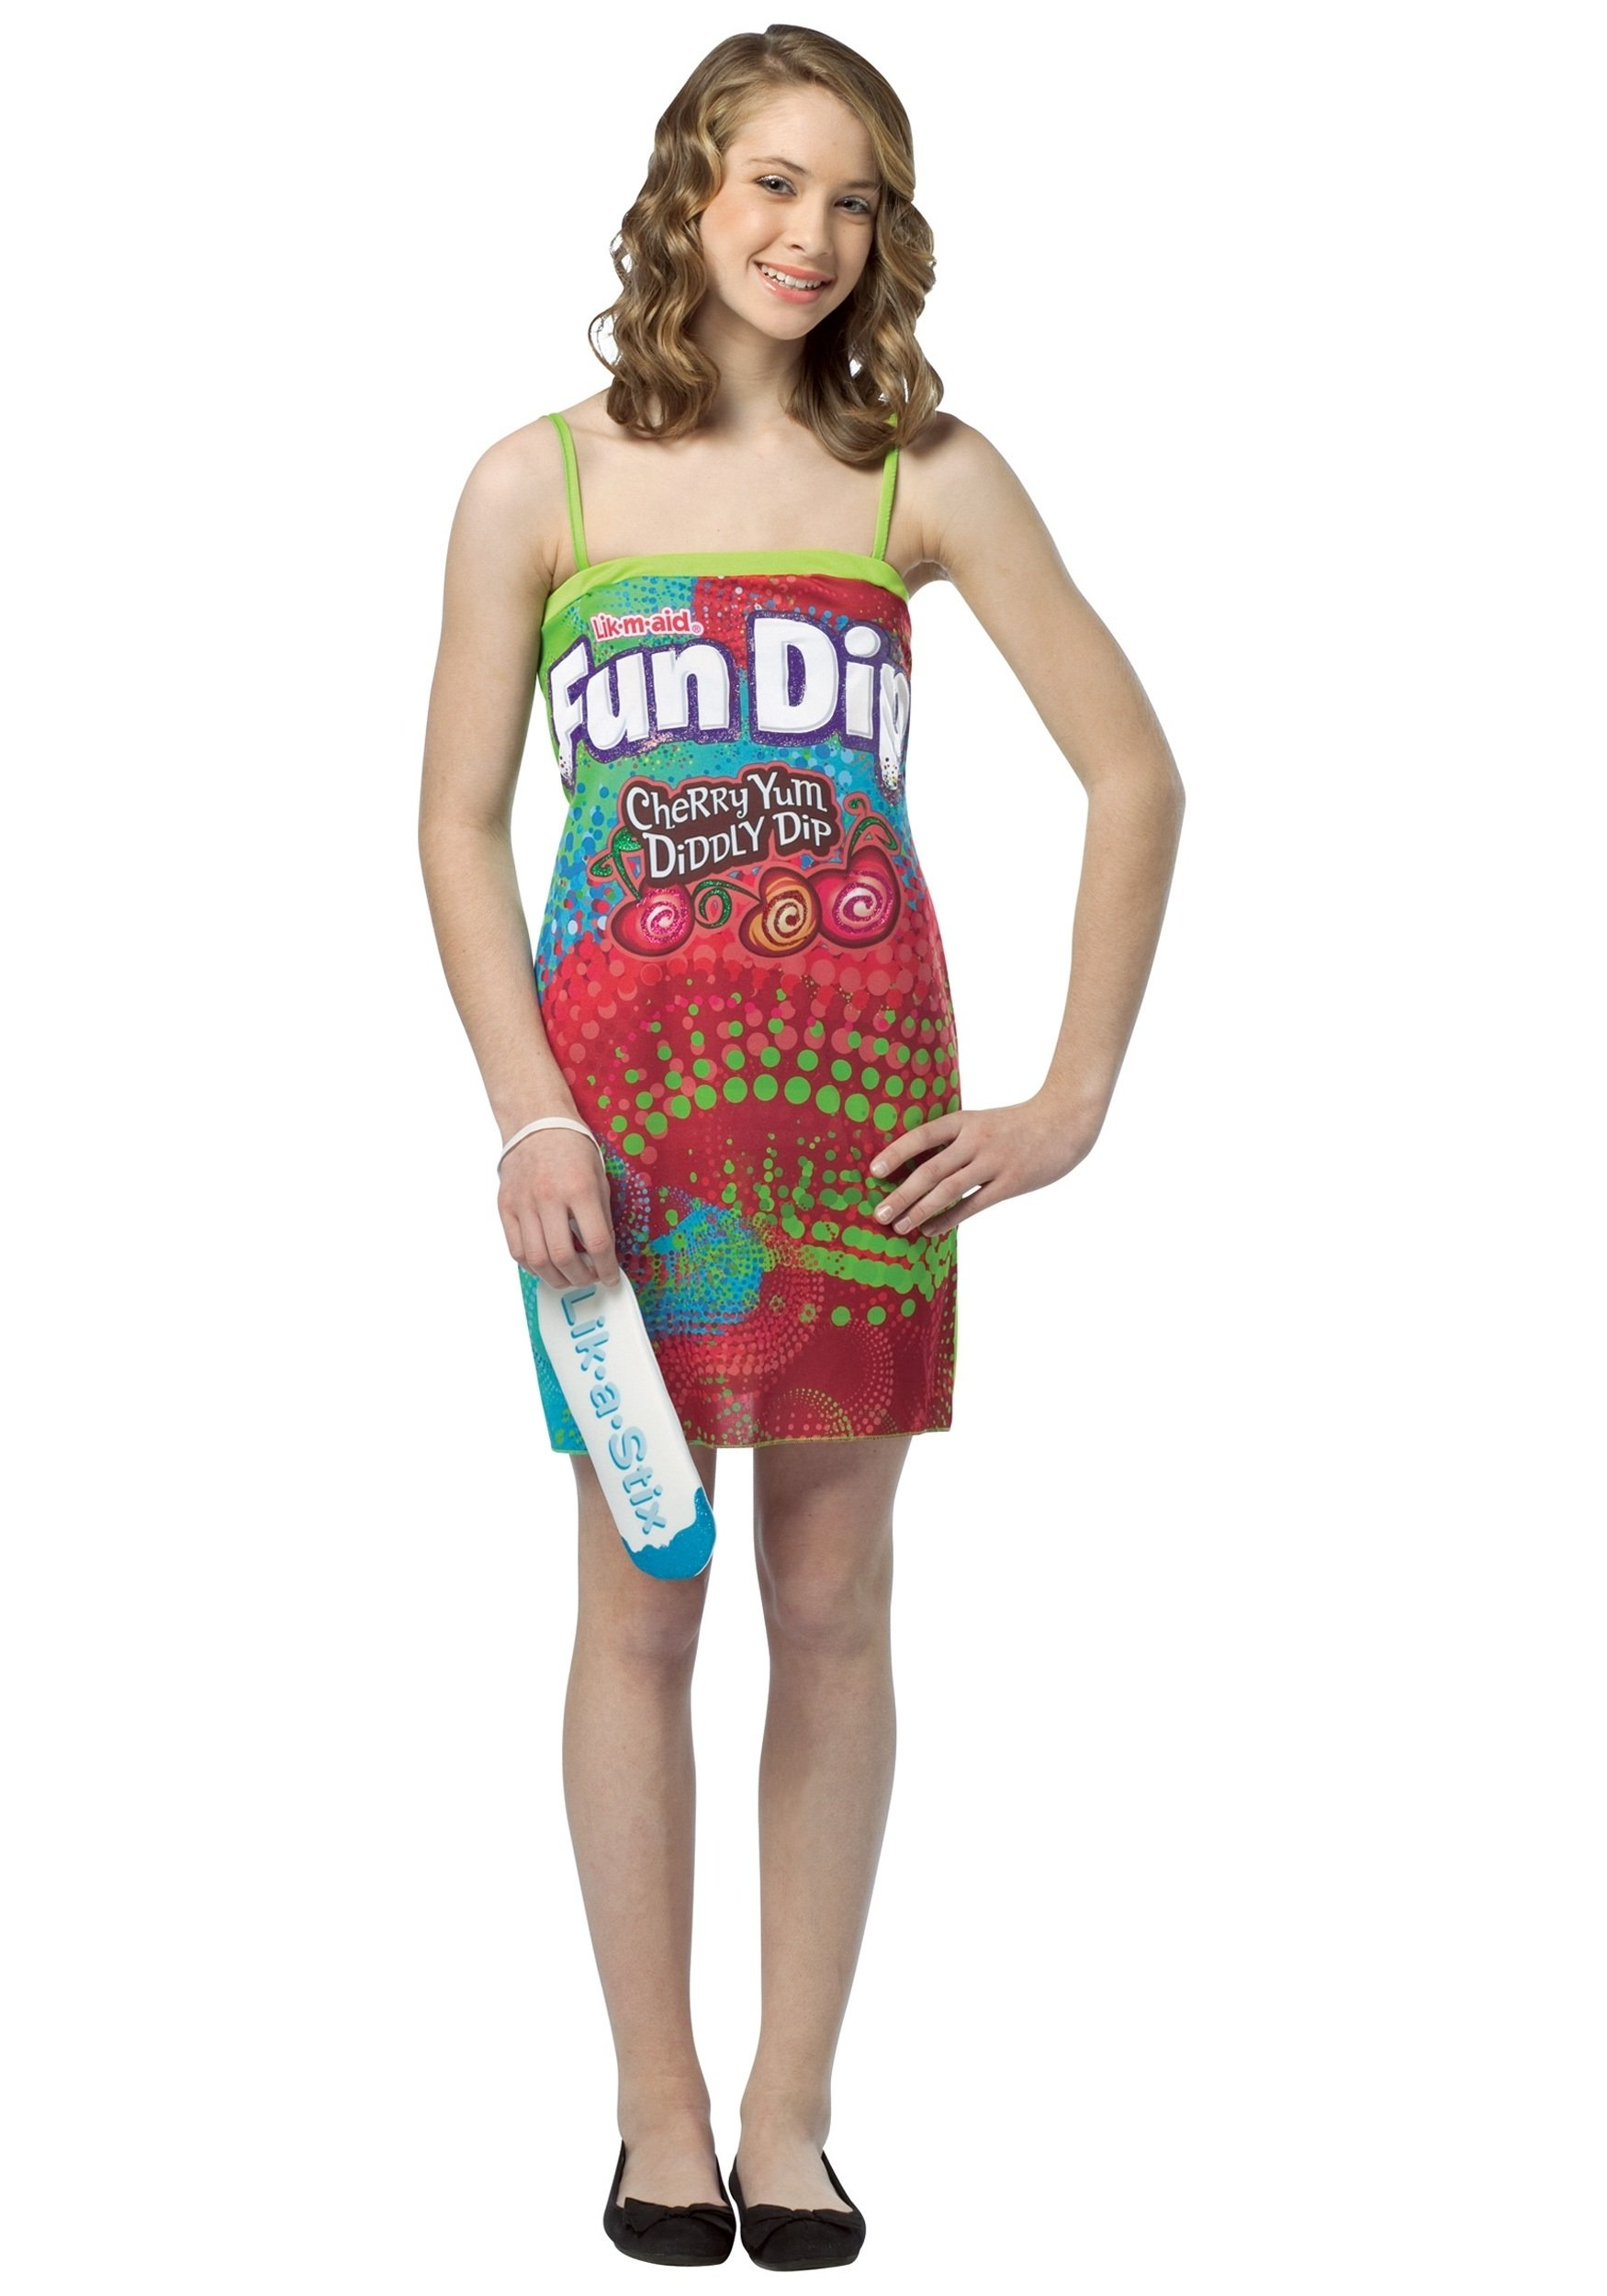 10 Fantastic Teenage Girls Halloween Costume Ideas teen fun dip dress halloween costumes 11 2020